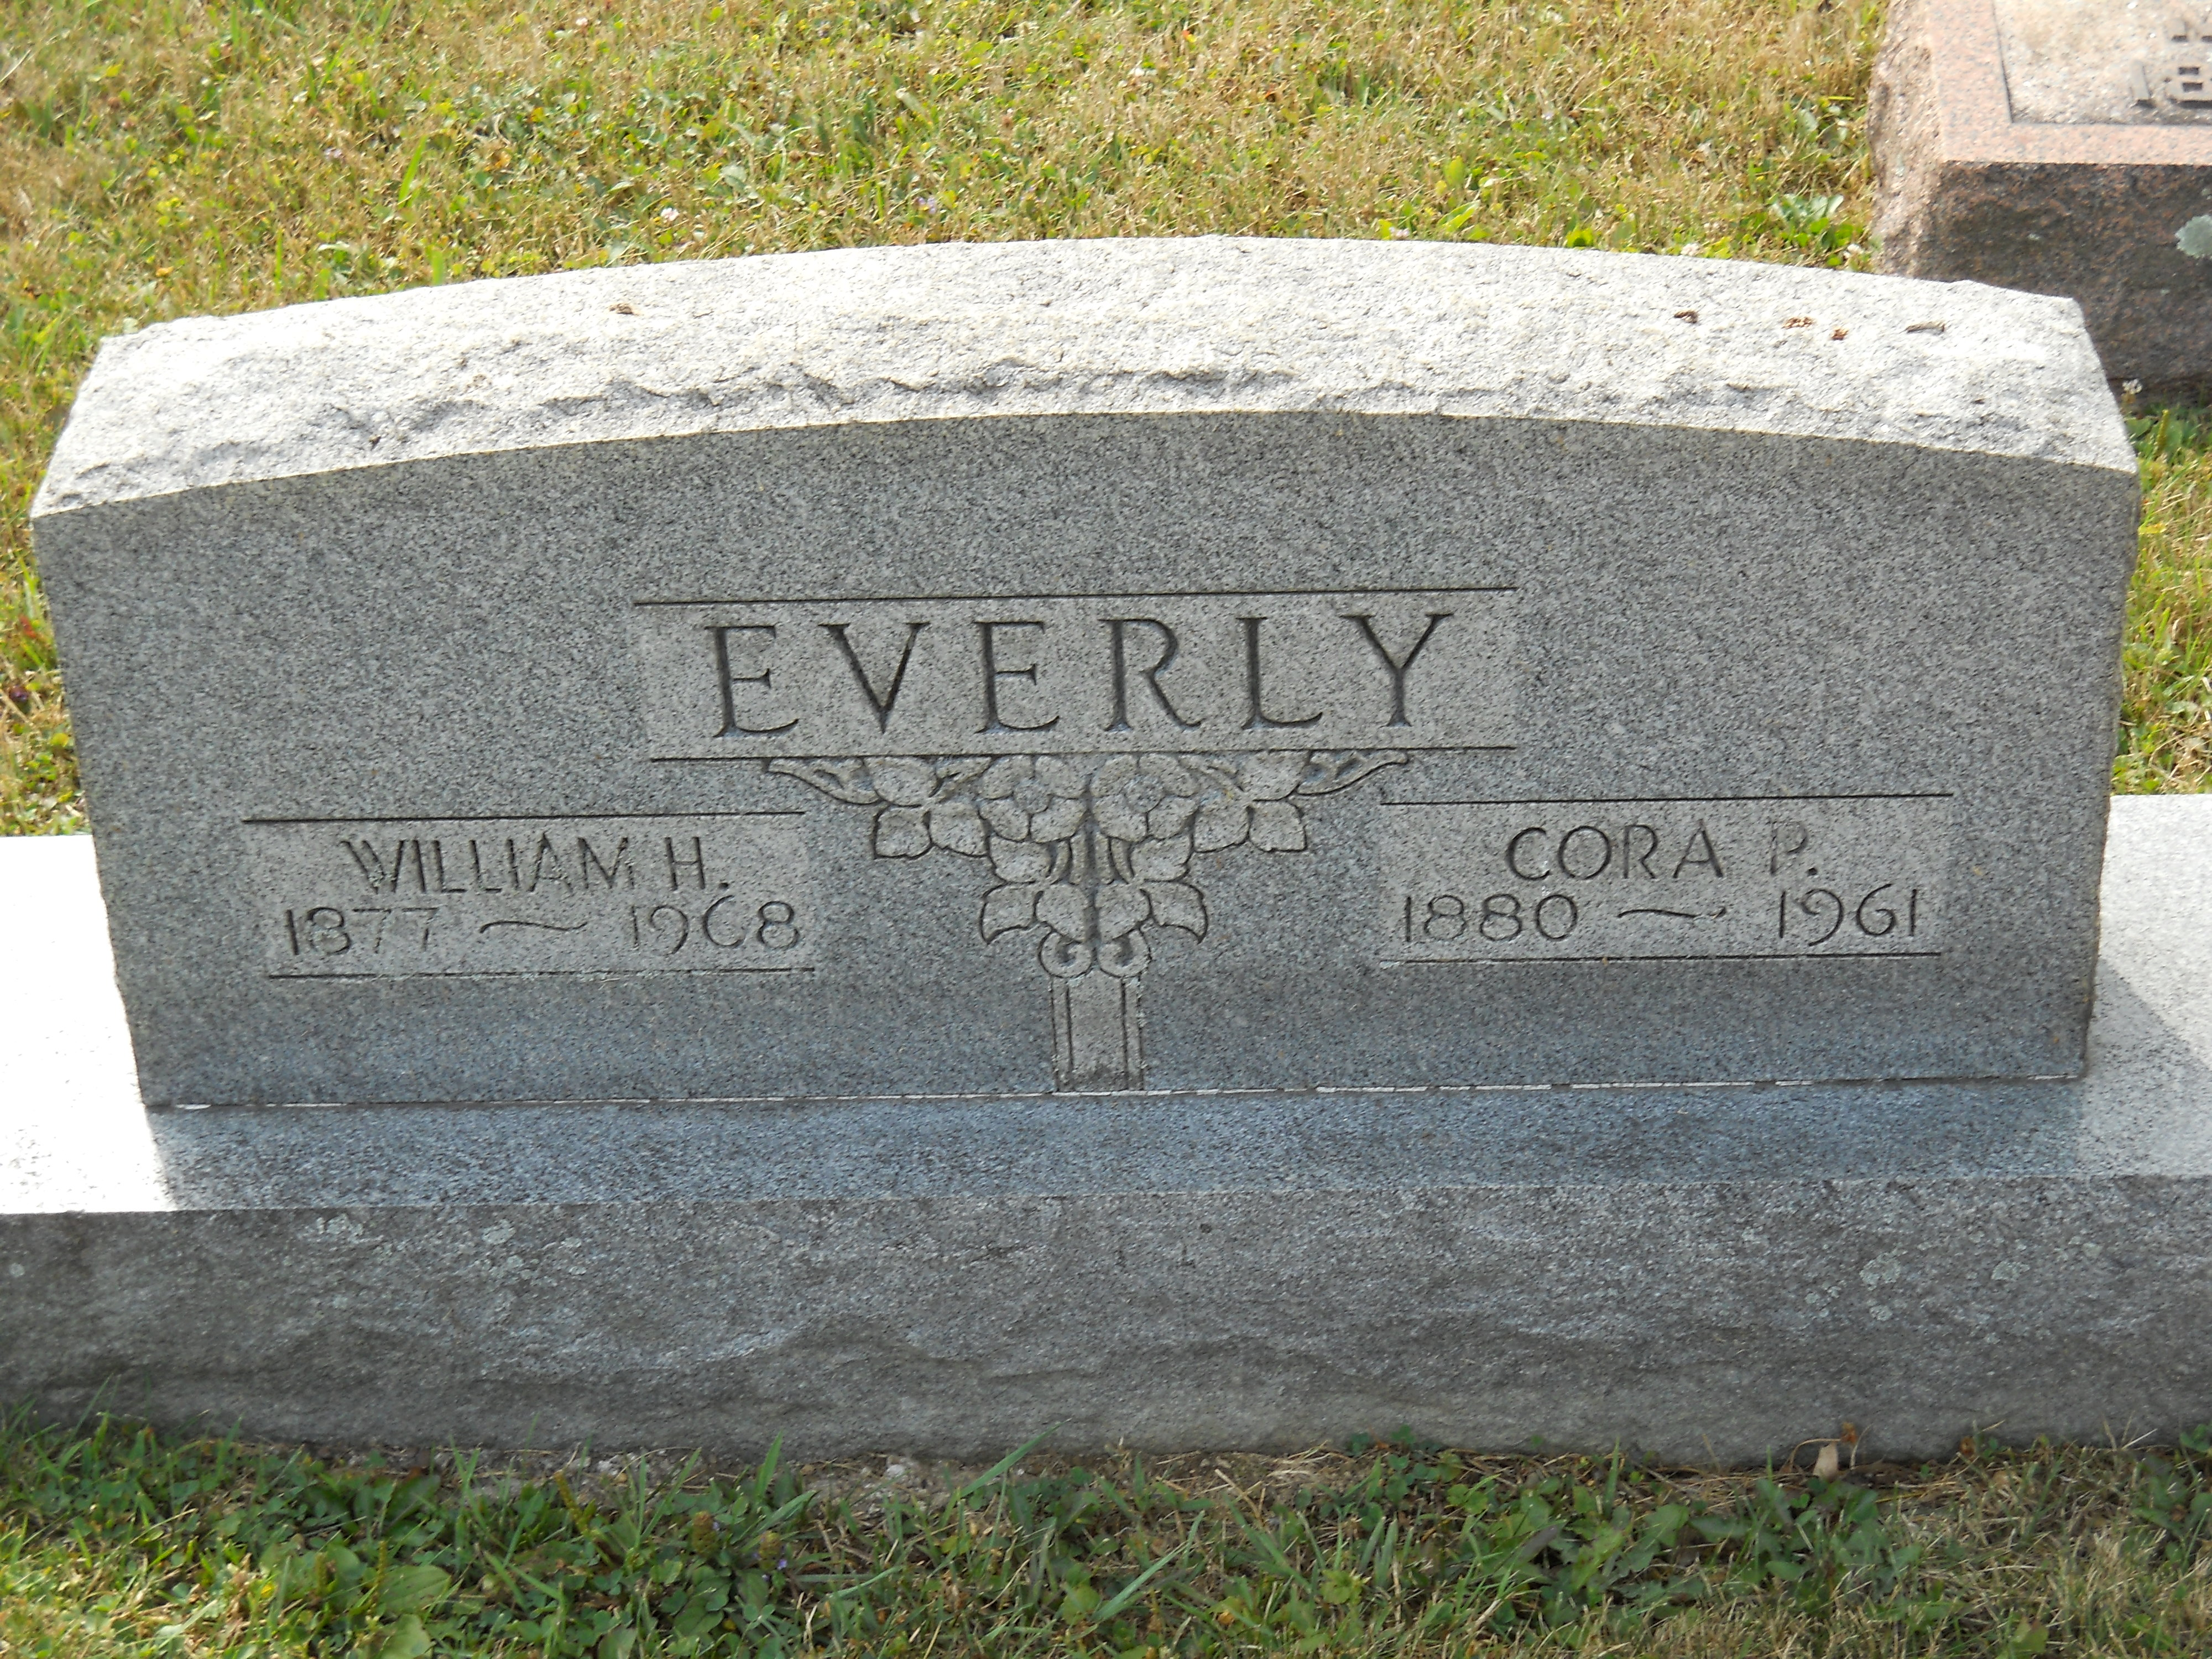 Pearl Everly